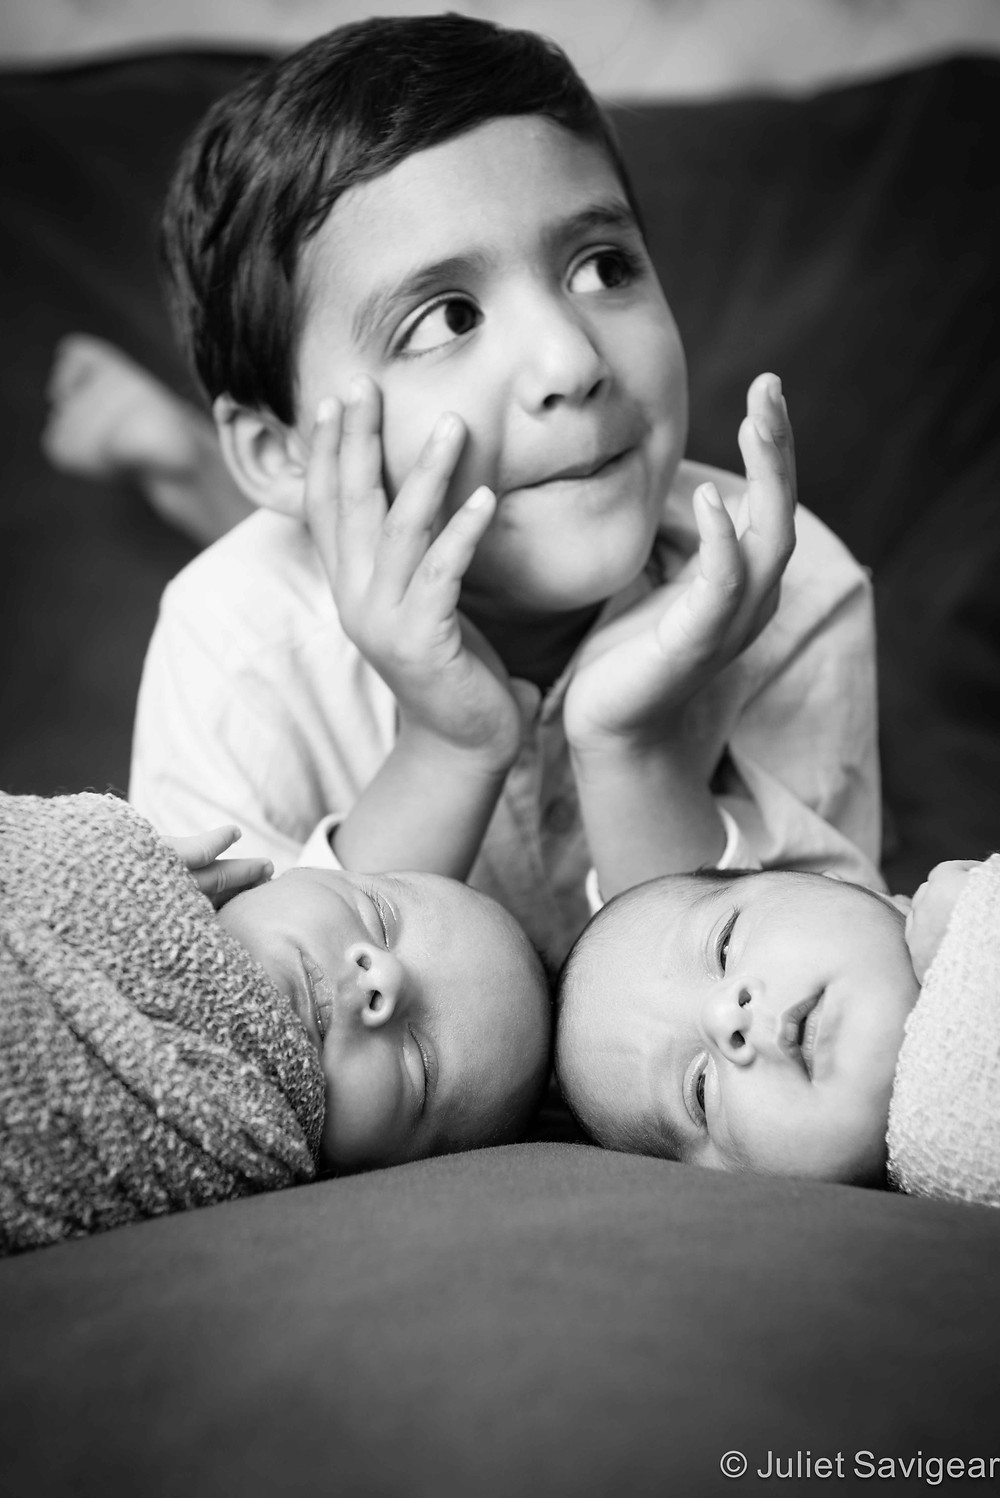 My new brother & sister - Children's & newborn baby Photography, Victoria, London